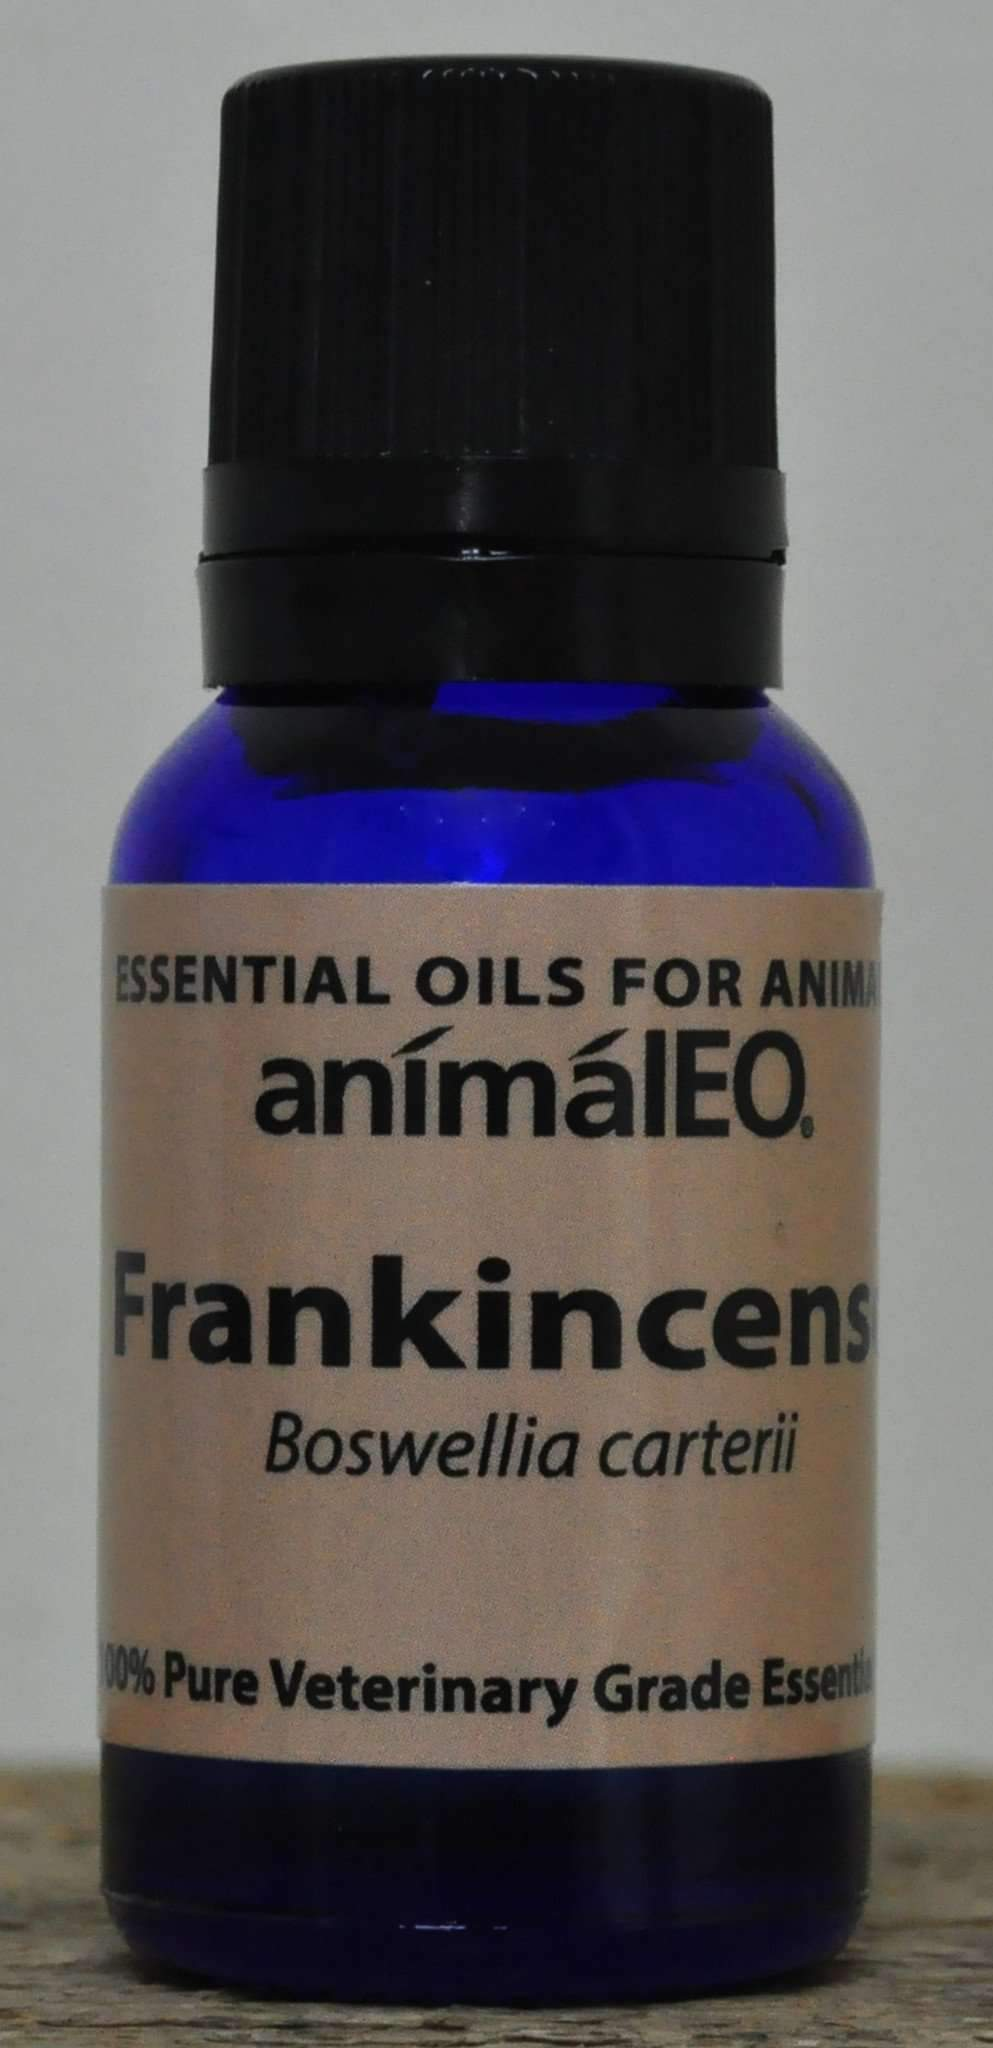 Frankincense Essential Oils for Pets